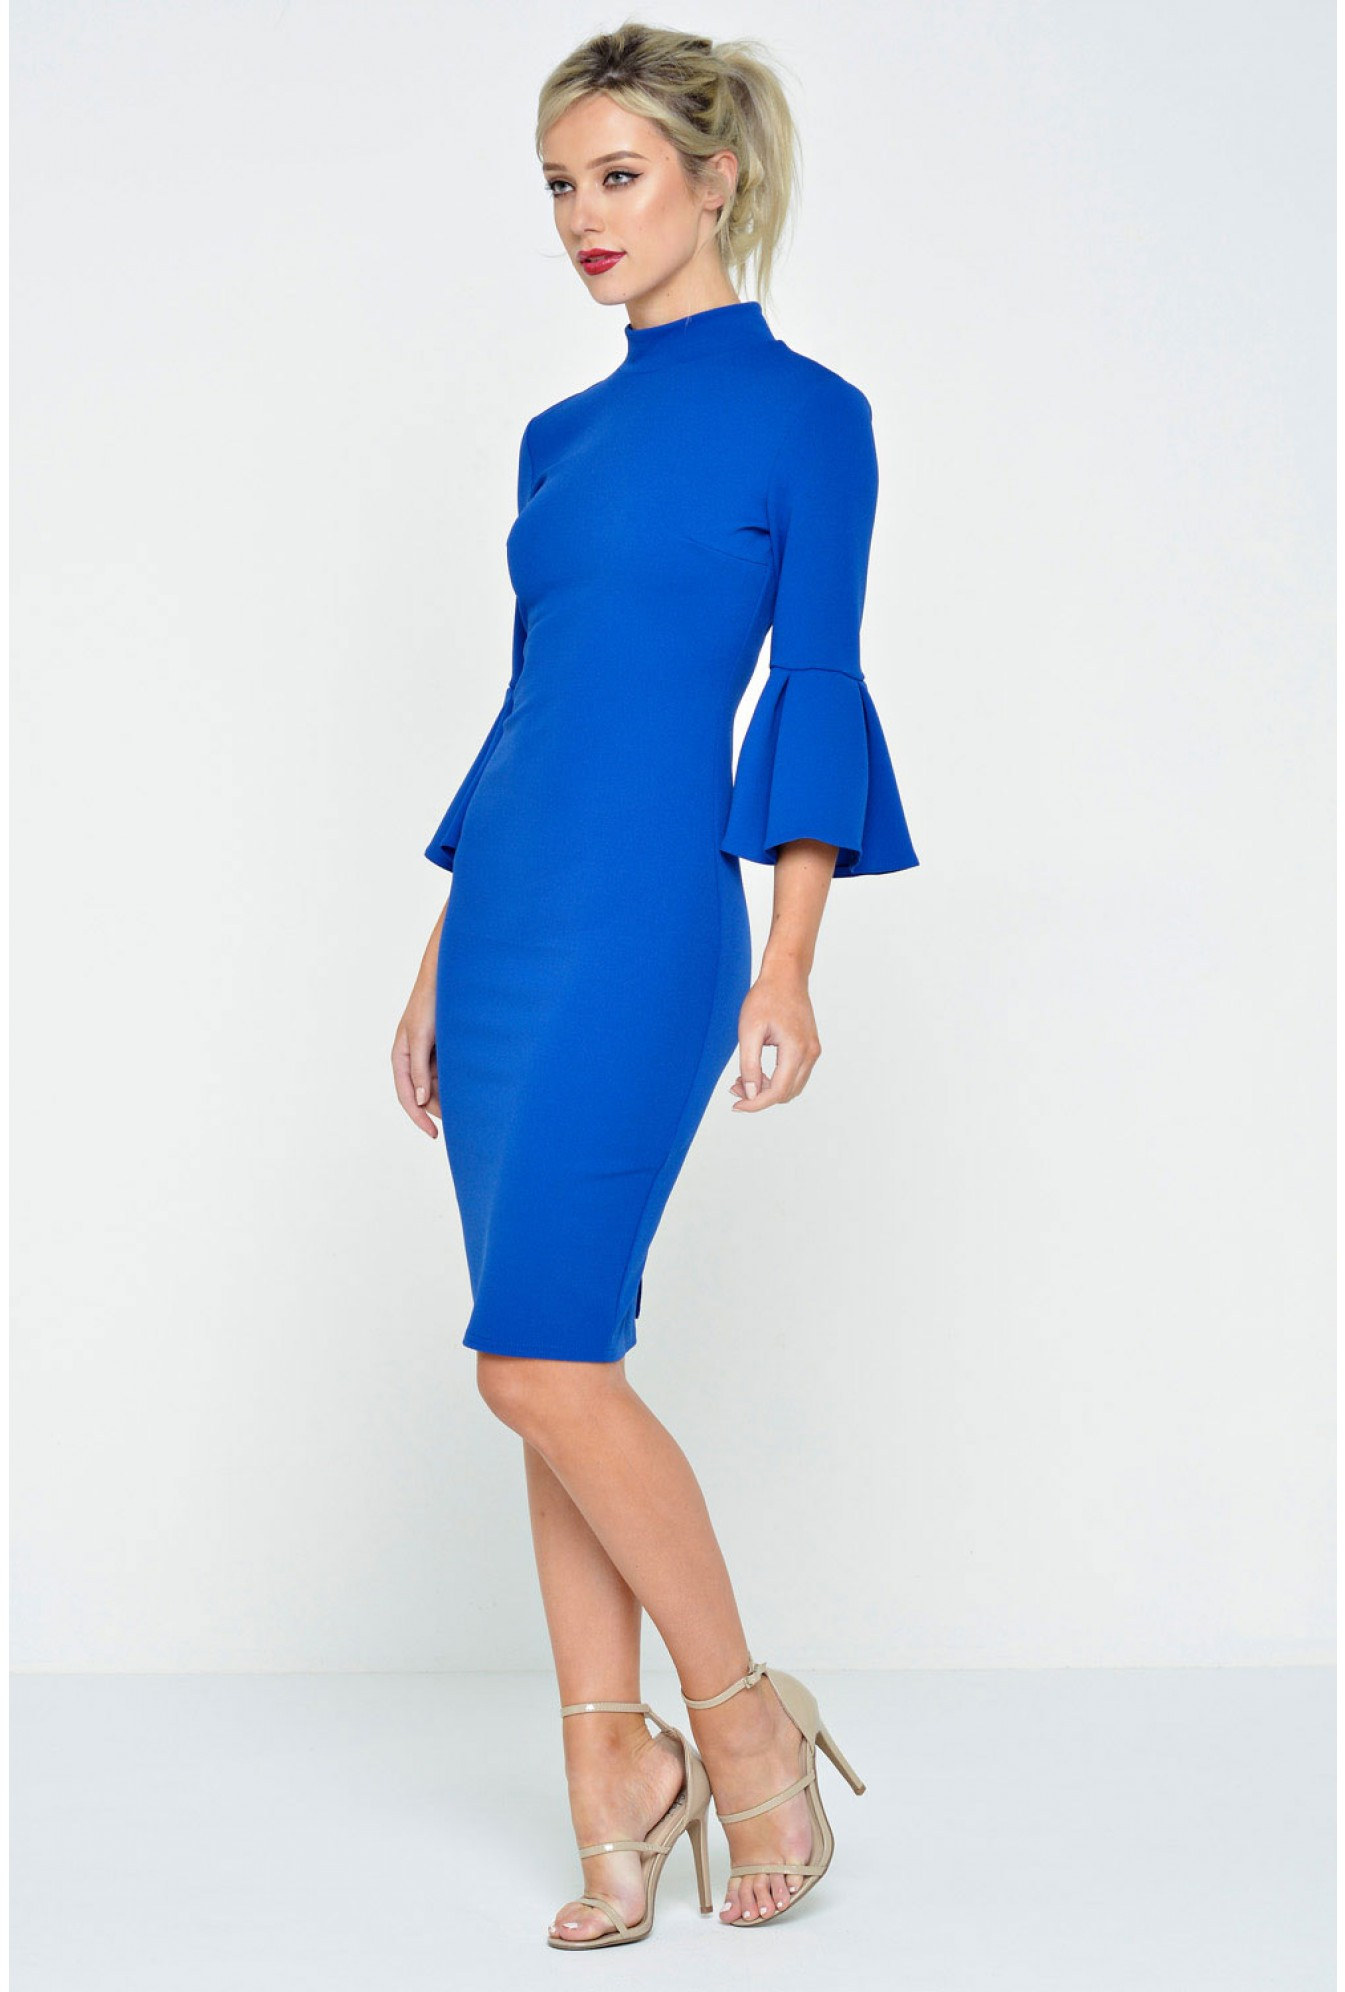 a3432955694 Ad Lib Sunny Flared Sleeve Midi Dress in Royal Blue